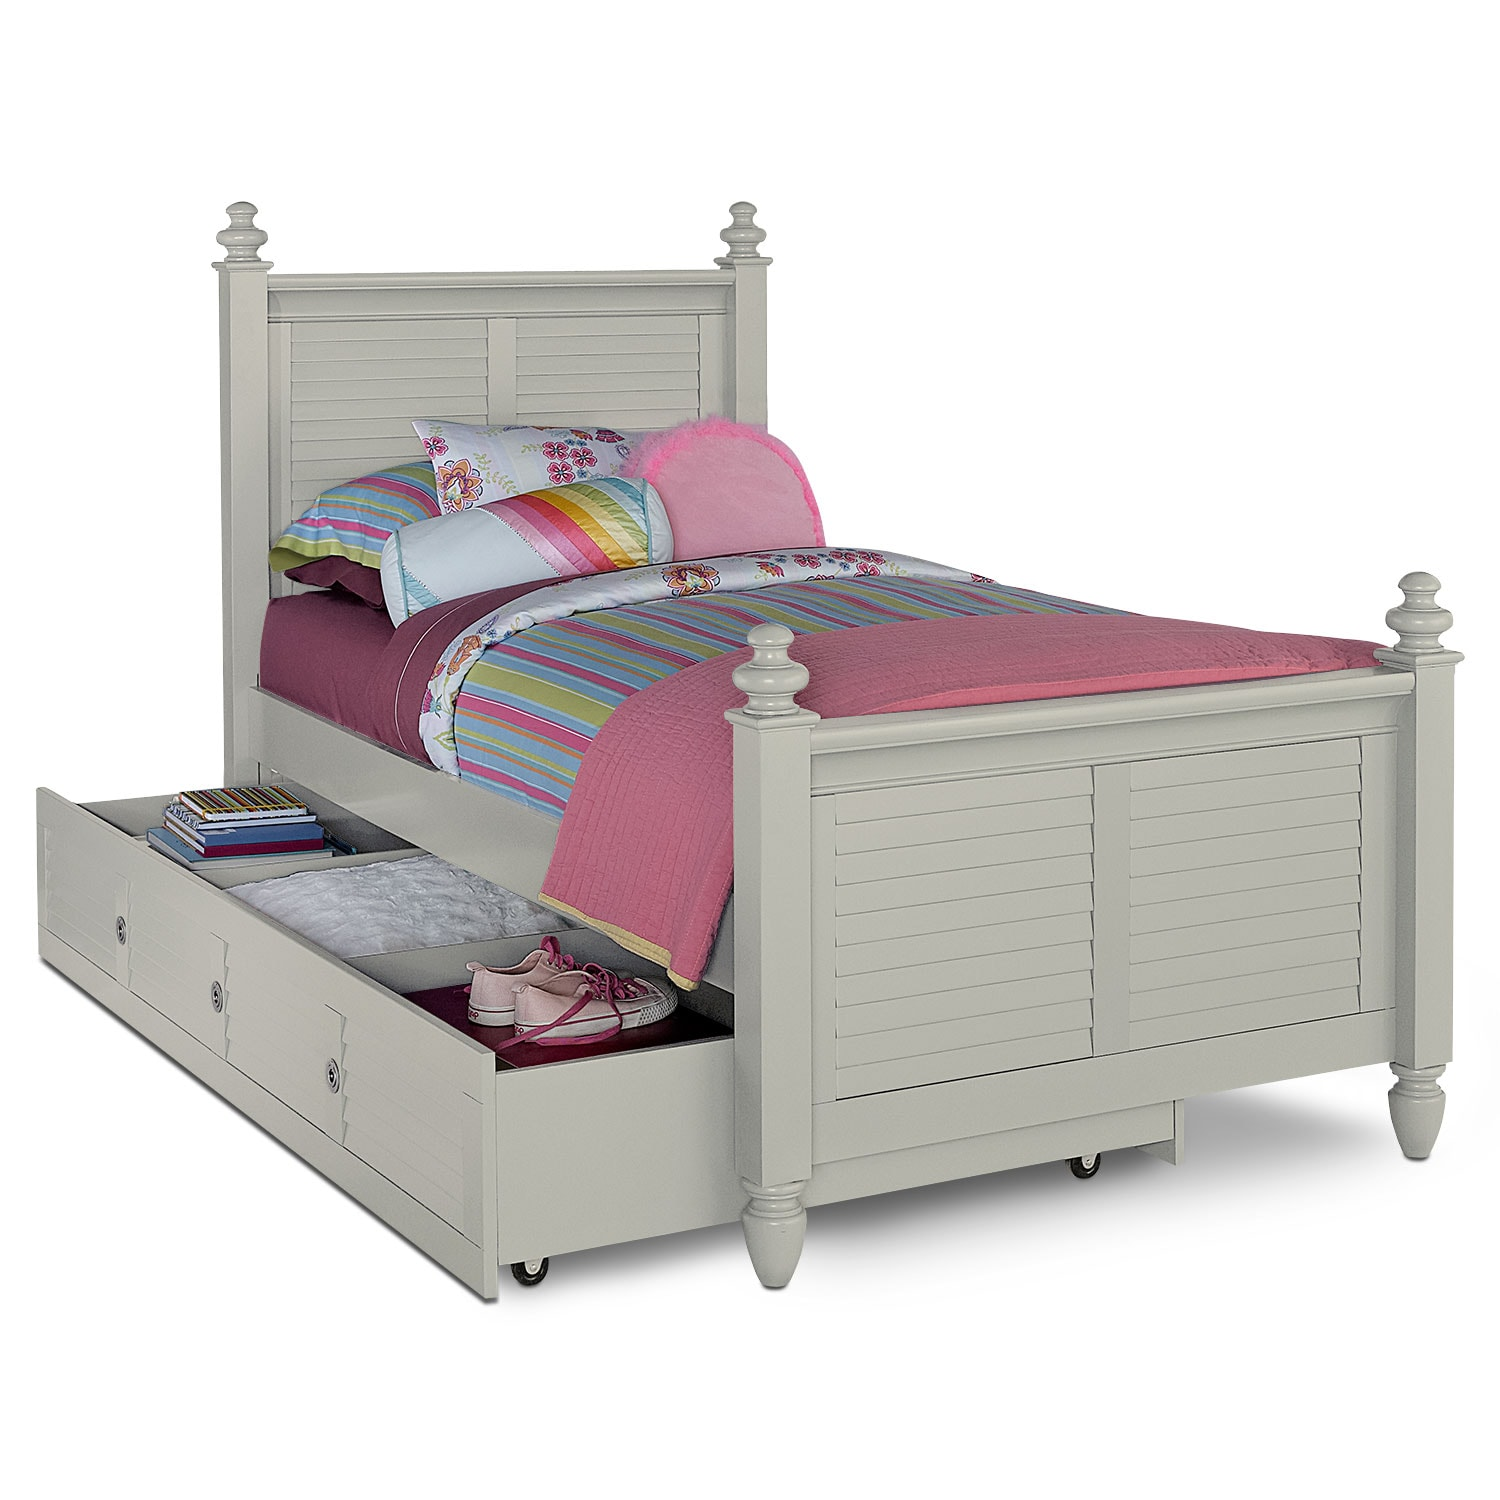 Seaside Full Bed with Trundle - Gray